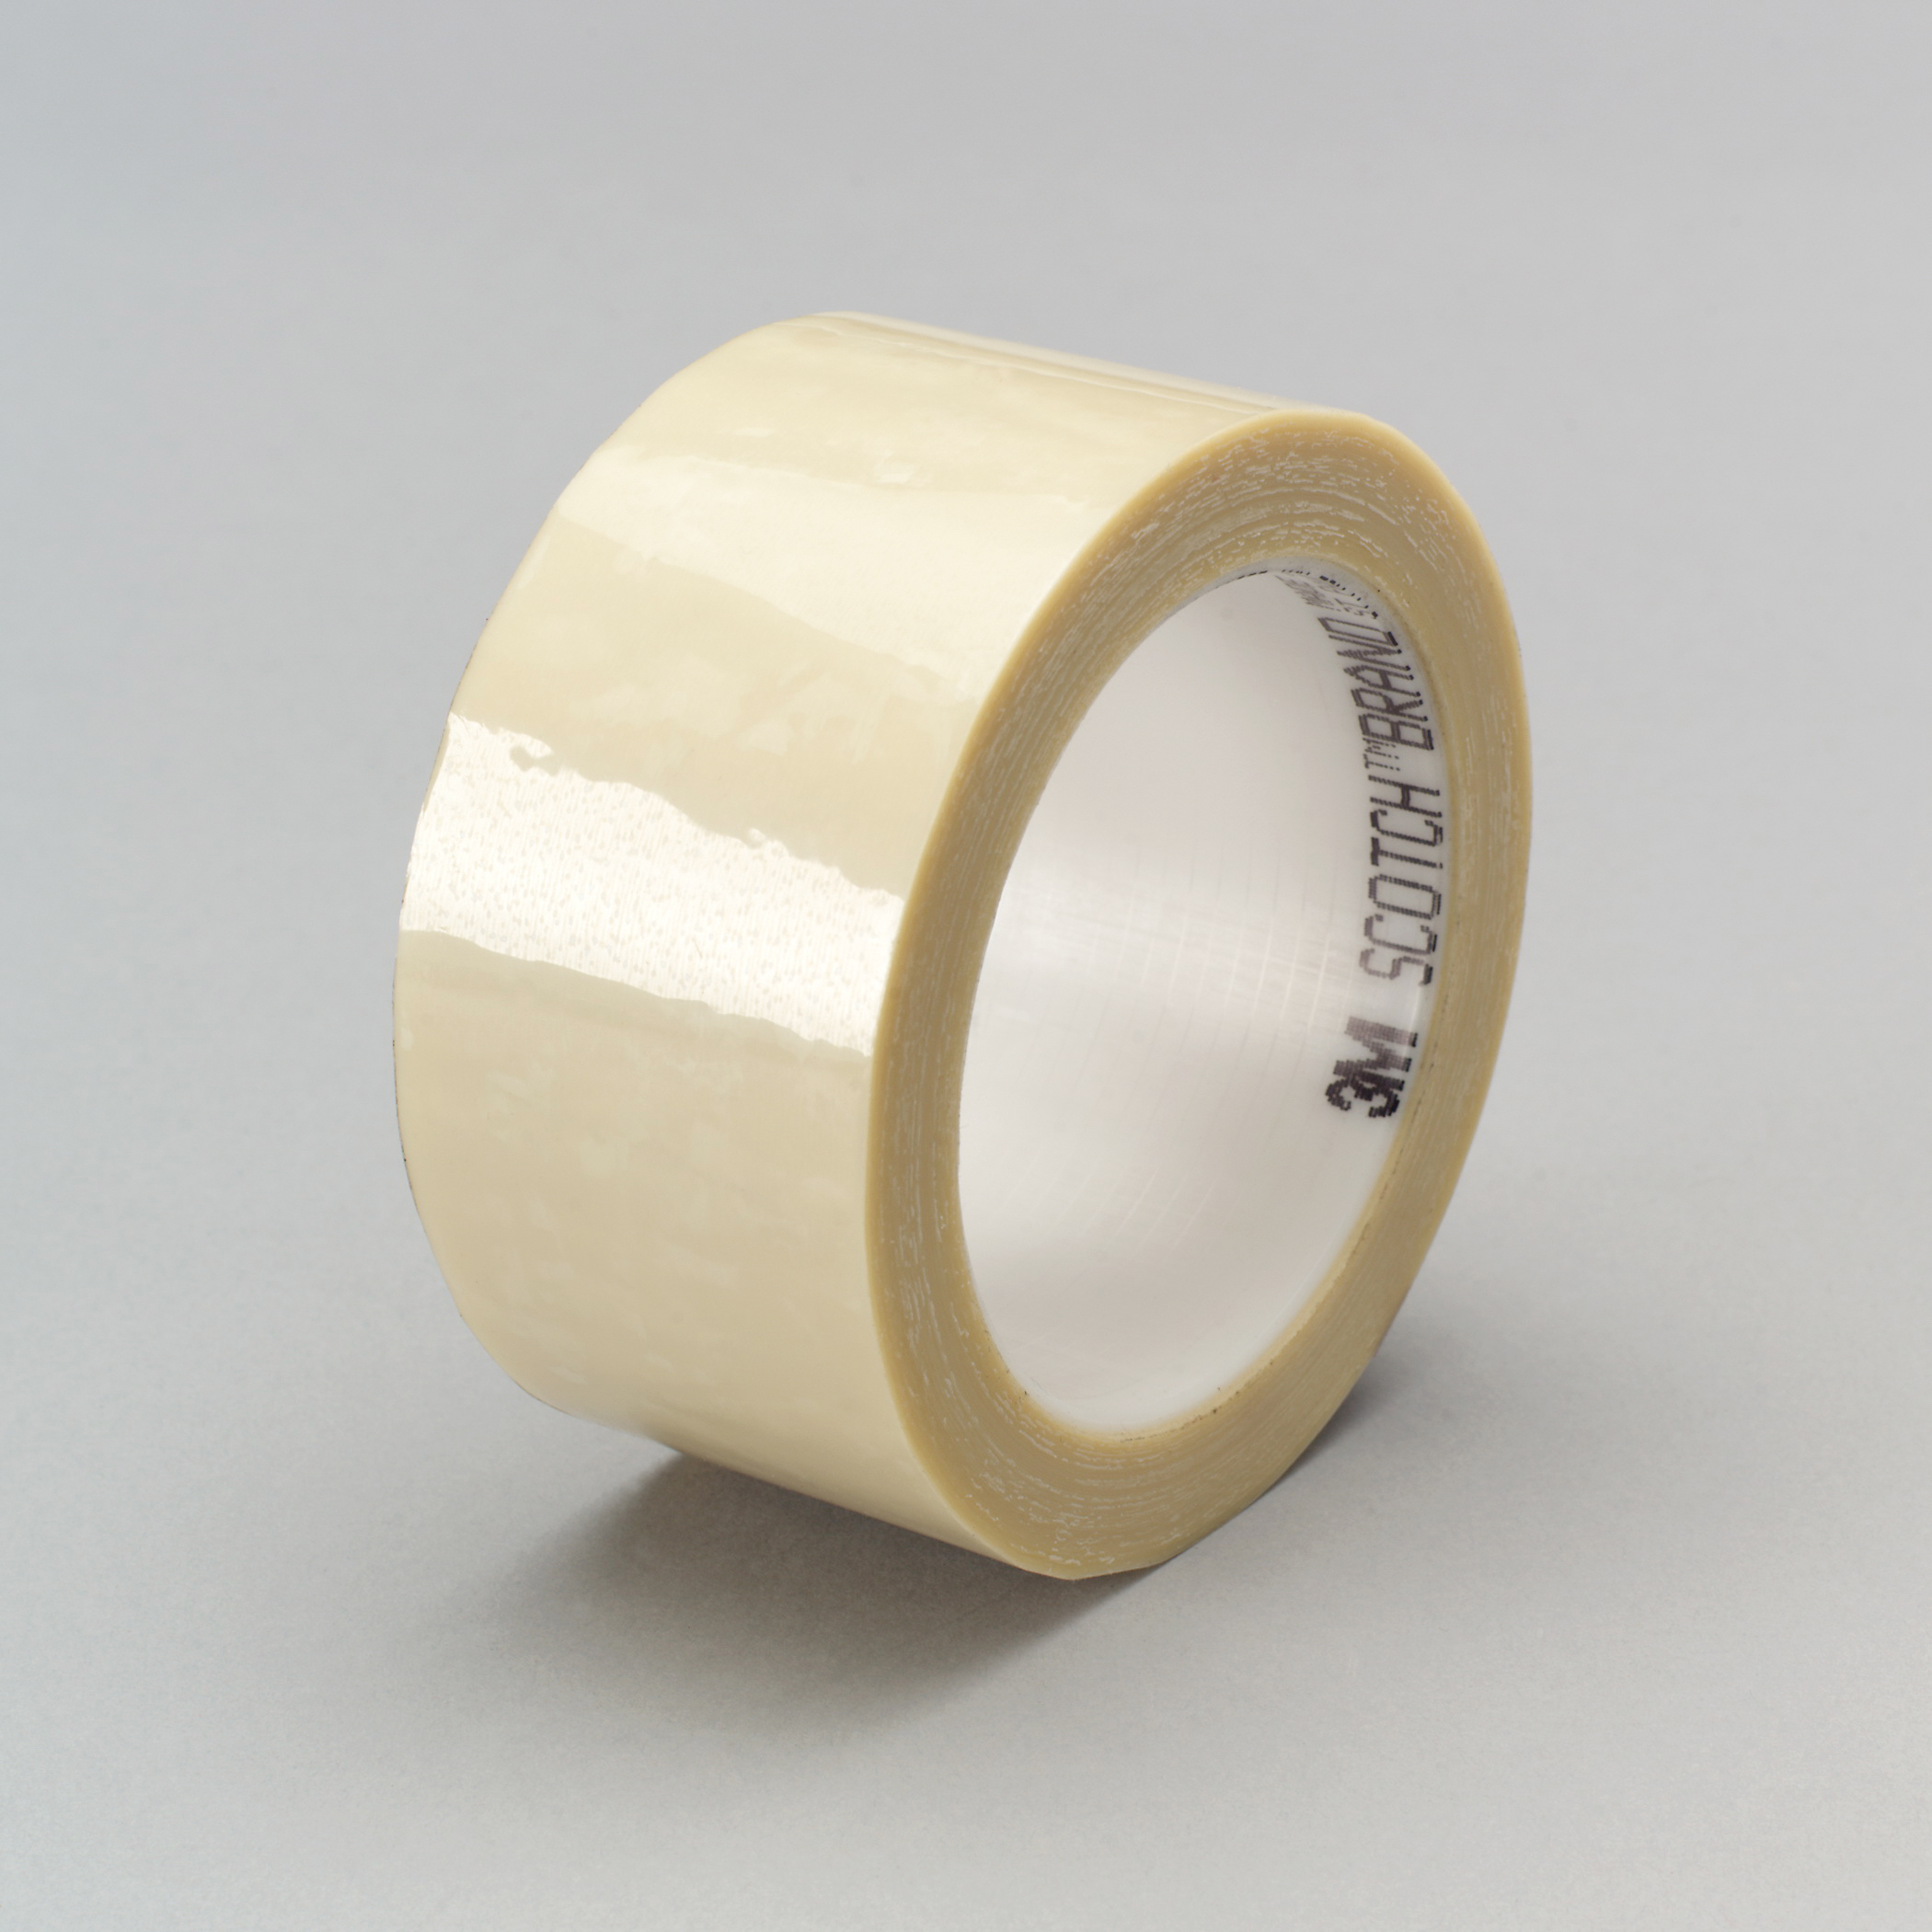 3M™ 021200-03787 Splicing Tape, 72 yd L x 1 in W, 1.9 mil THK, Rubber/Silicon Blend Adhesive, Polyester Backing, Translucent Cream